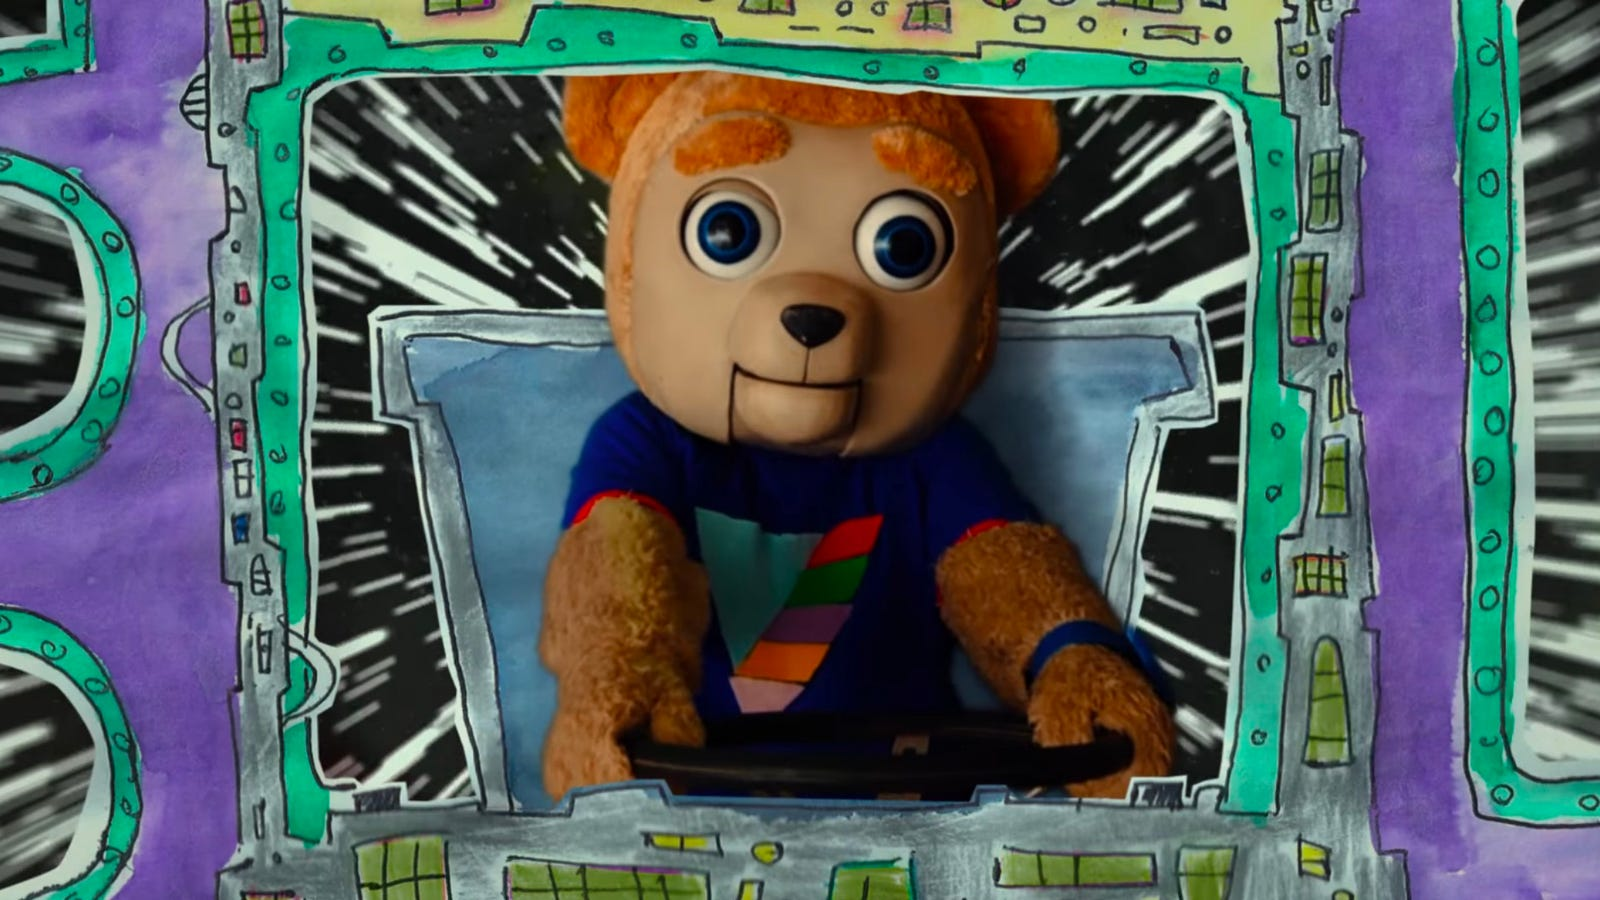 brigsby bear is a weird movie about a mysterious tv show